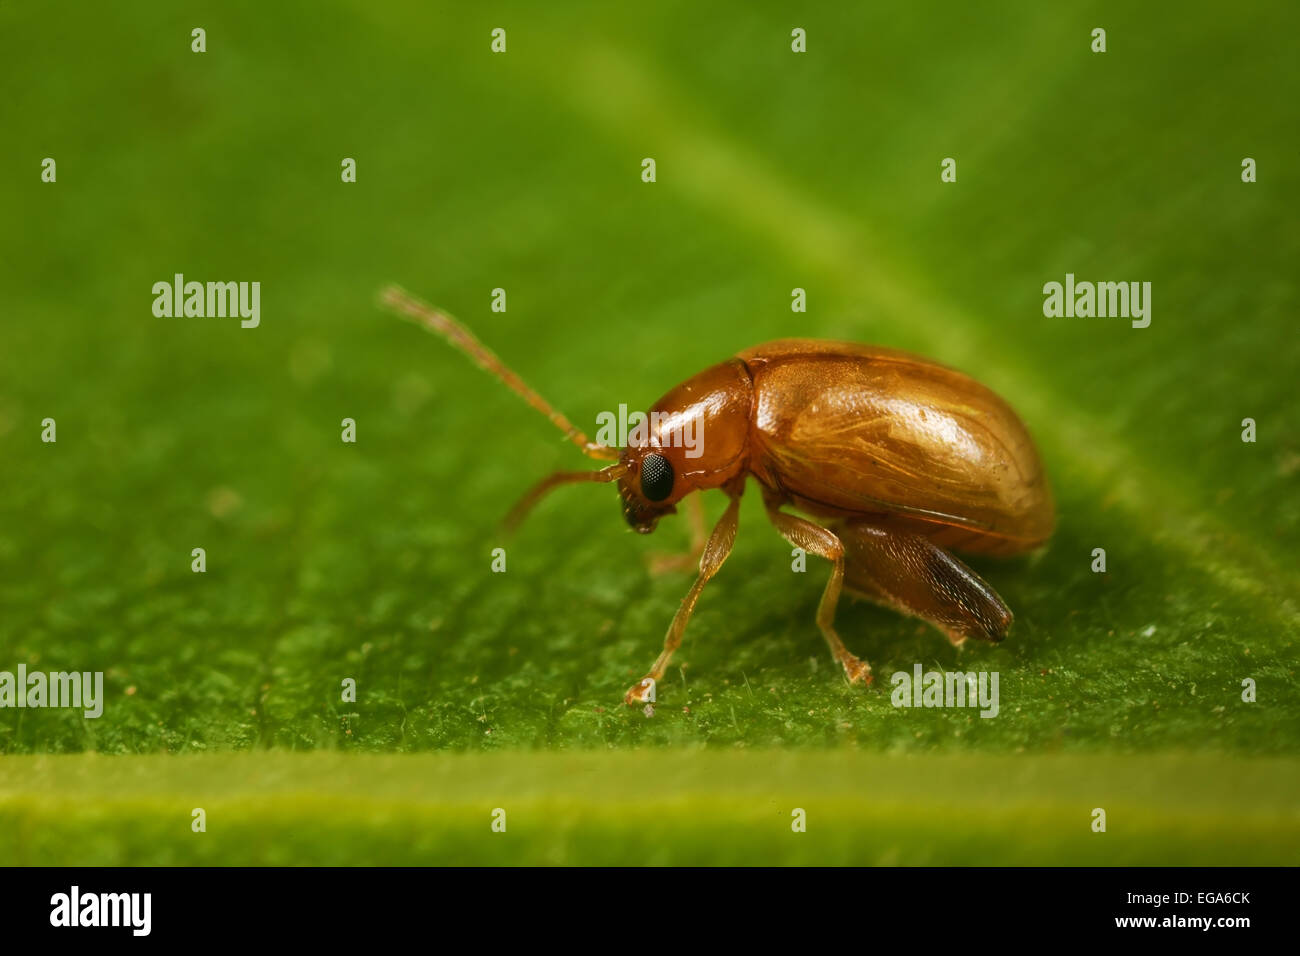 Small insect on leaf - Stock Image